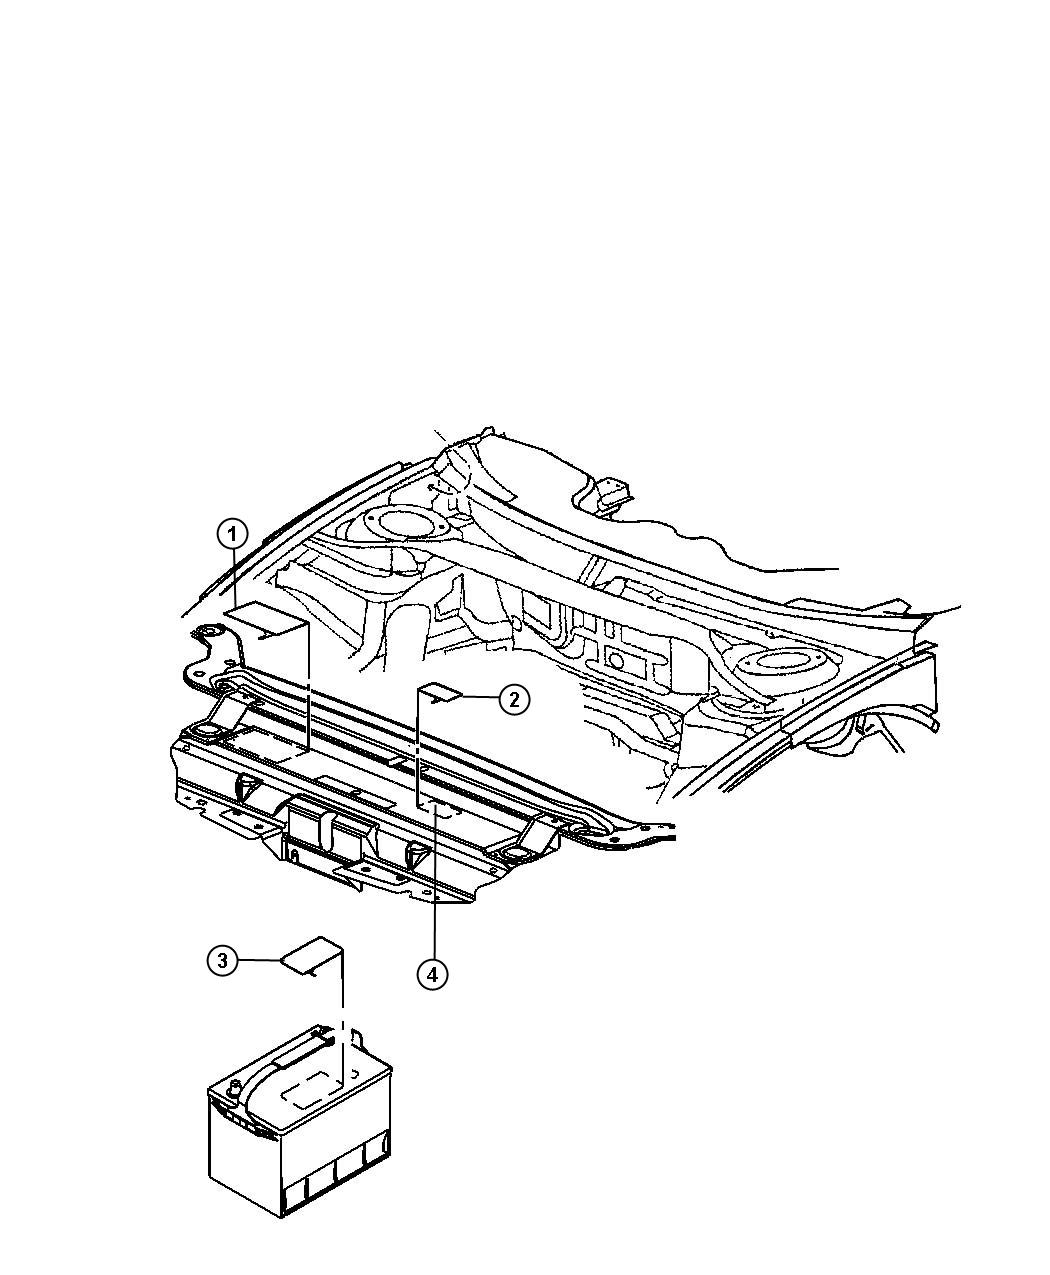 Dodge Charger Label Air Conditioning System Hood